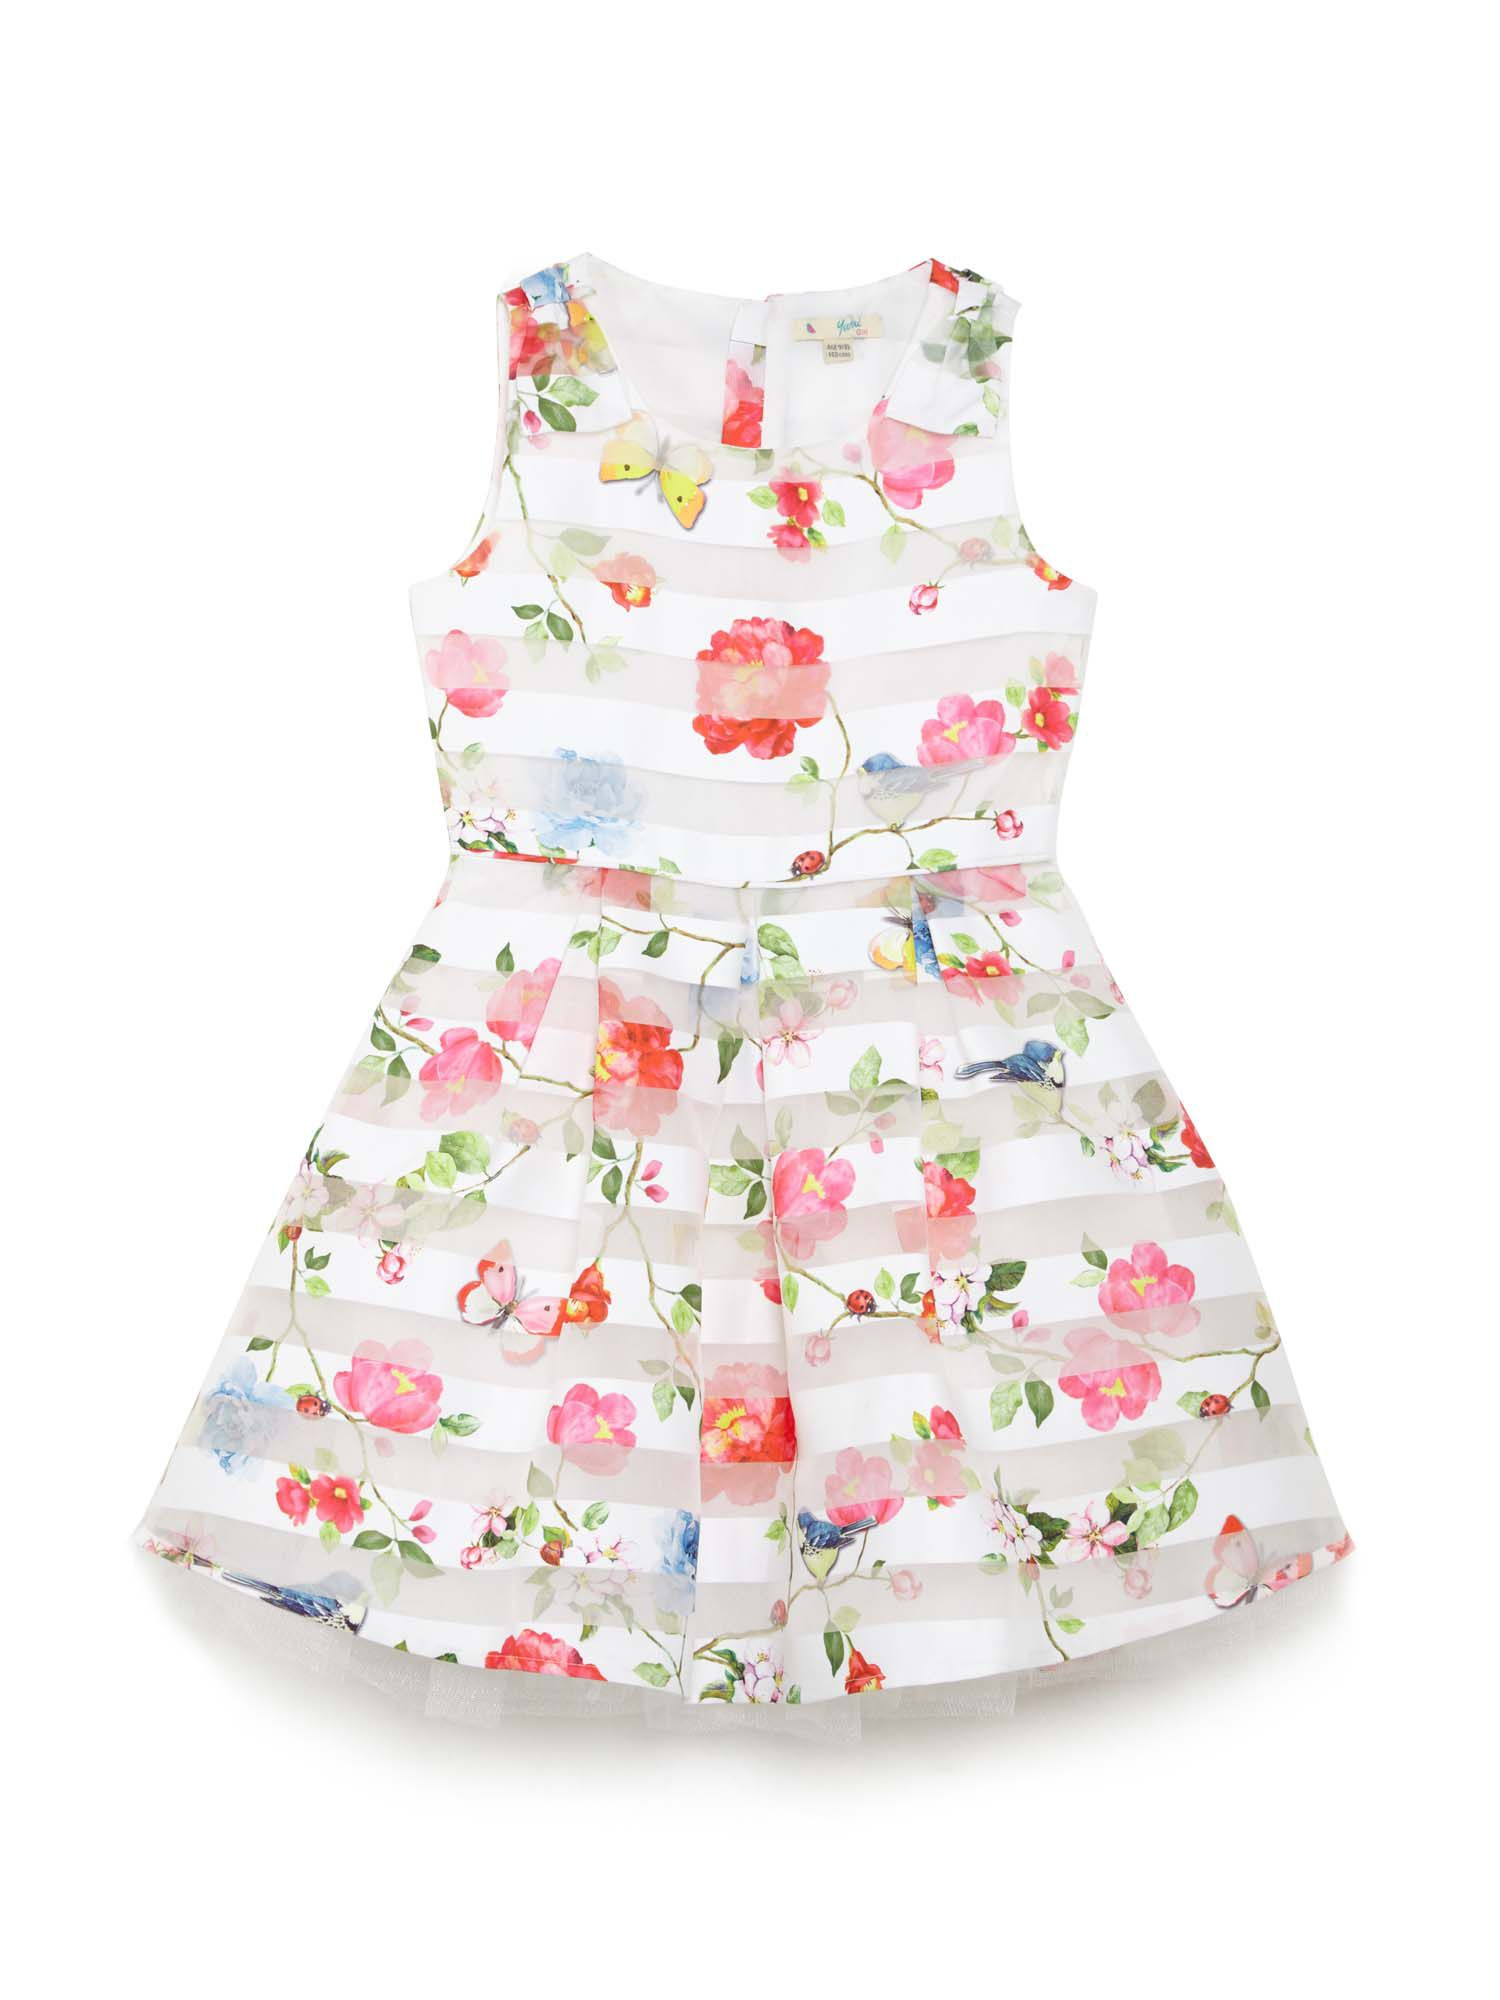 Girls Sheer Floral And Butterfly Print Dress by Yumi Girls